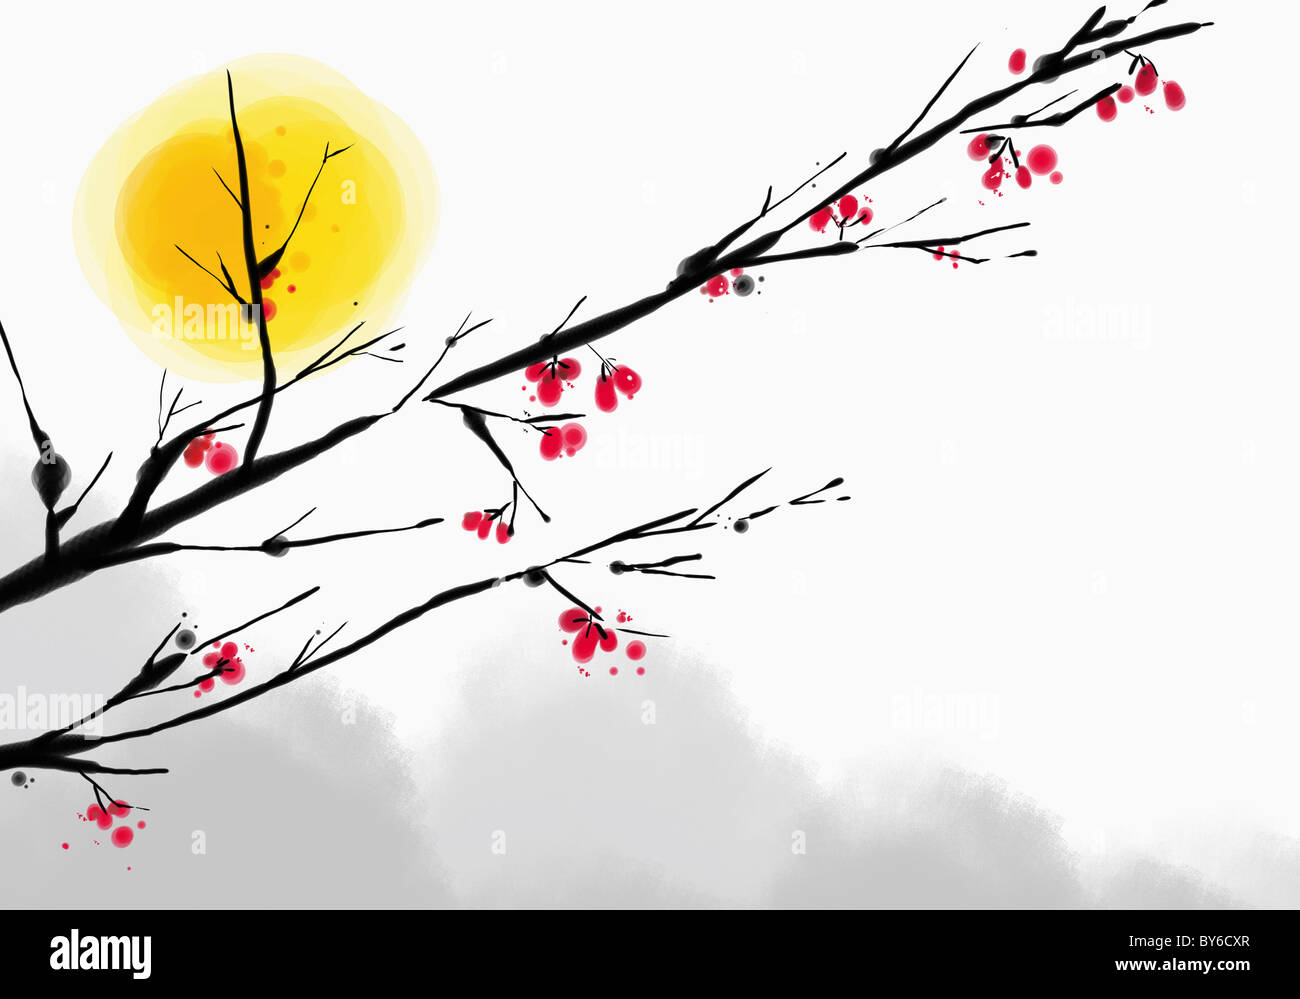 new year's greeting illustration in oriental mood - Stock Image